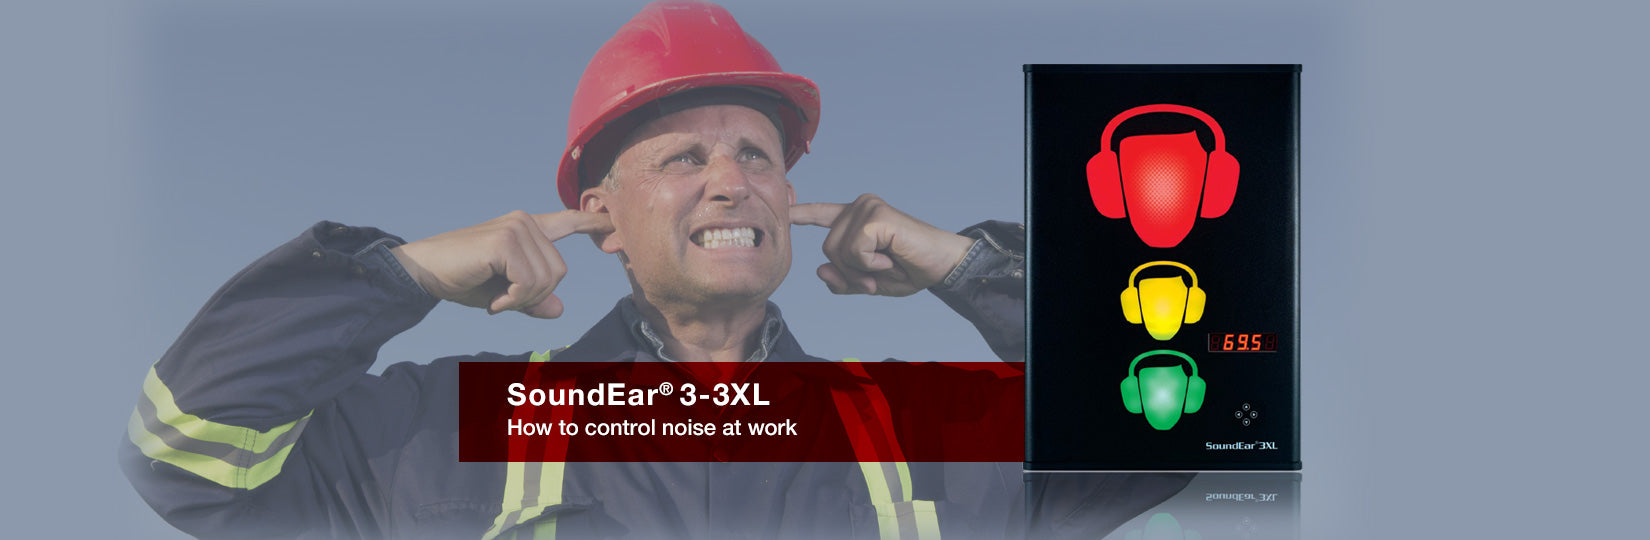 SoundEar 3 XL Industrial Noise Level Monitor & Recorder